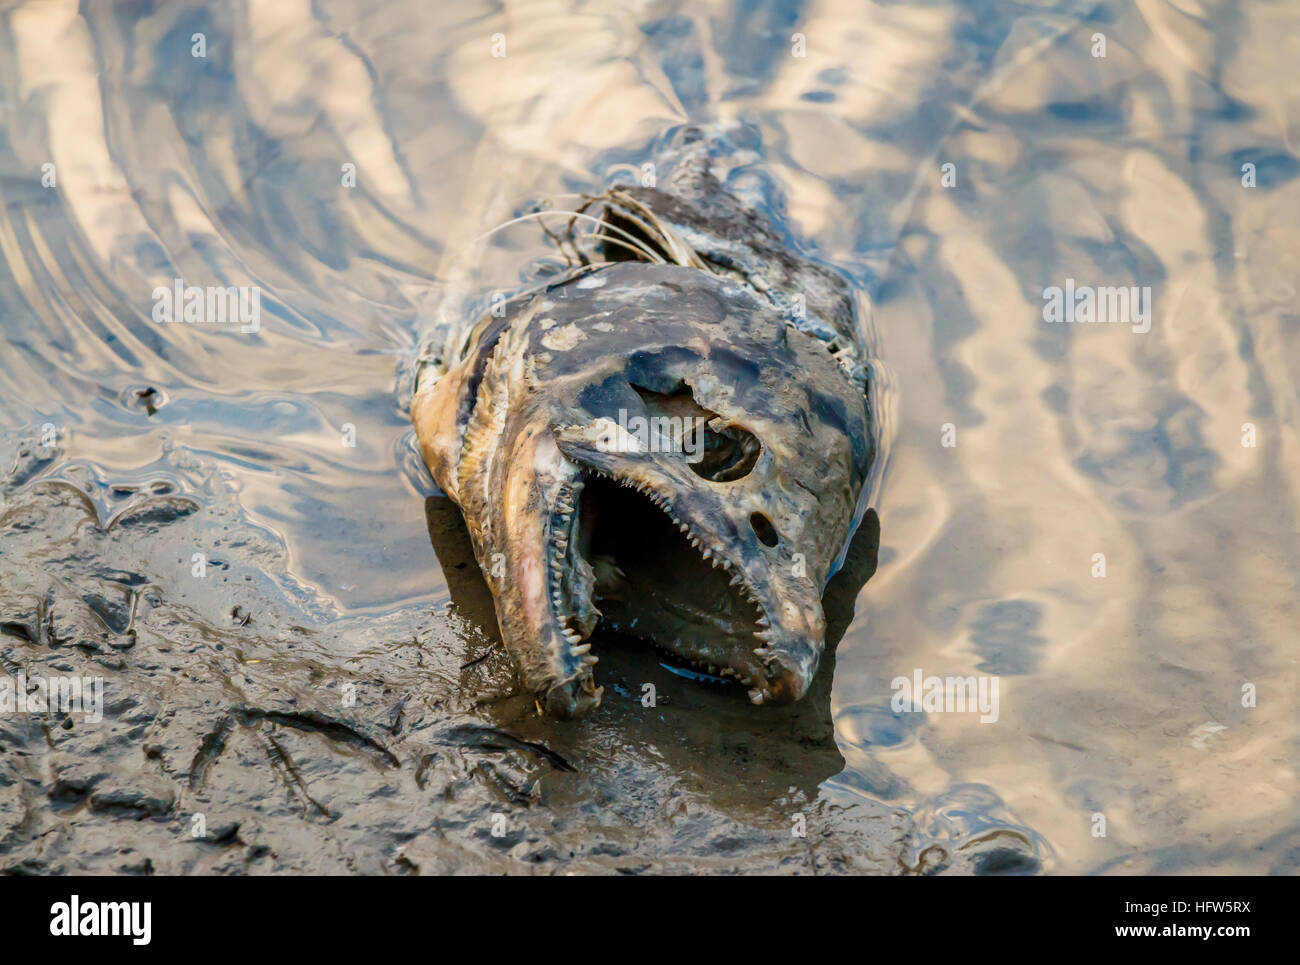 Image result for dead rotting fish